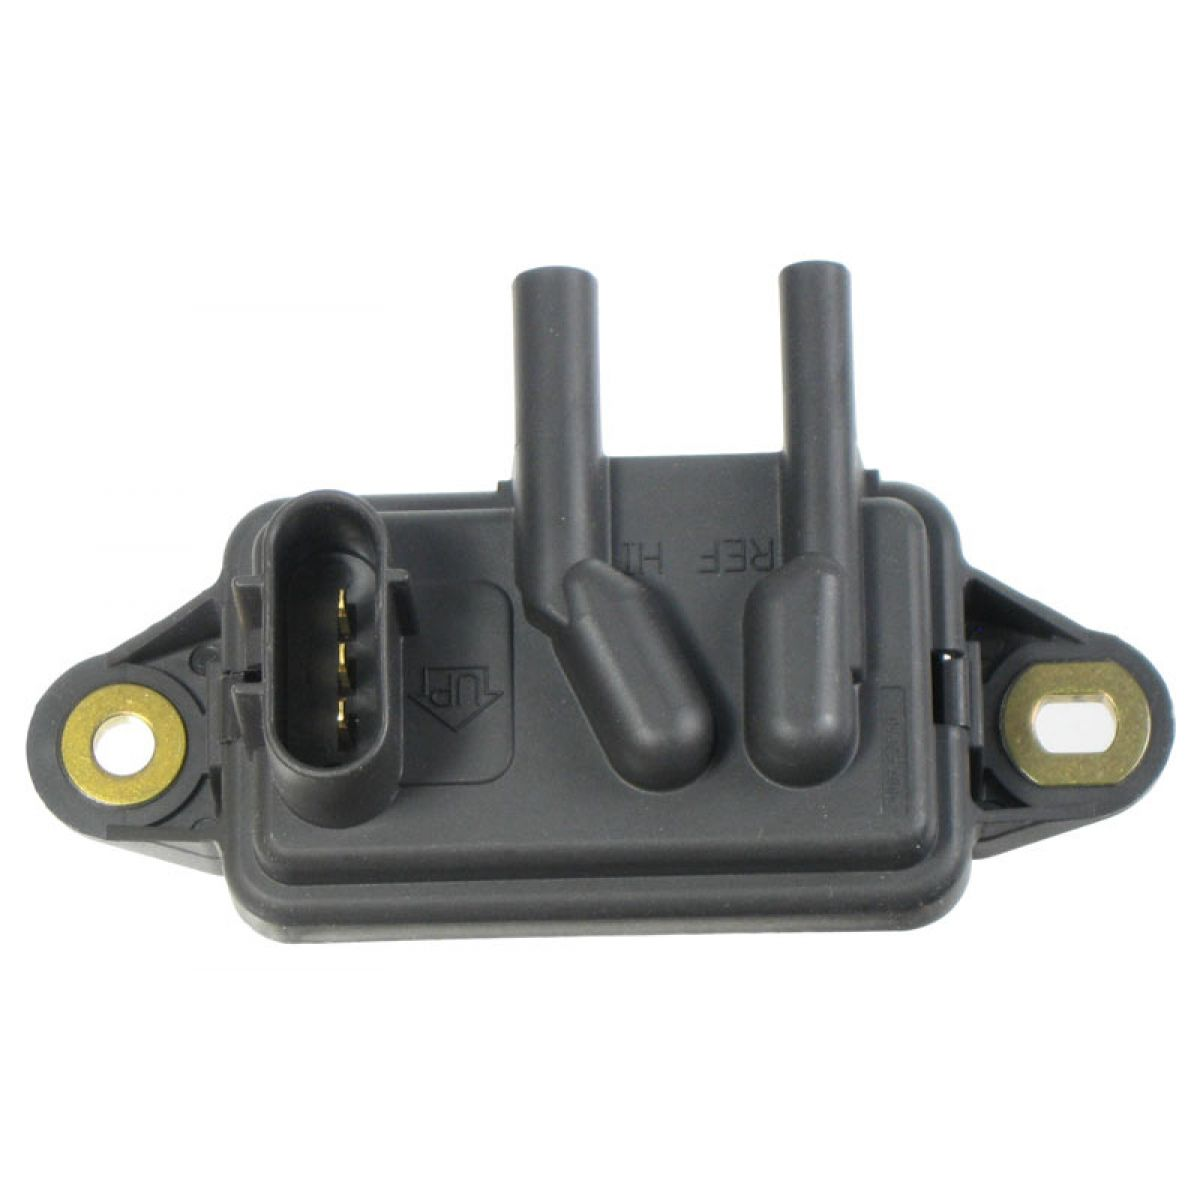 301101582489 as well SeriesMDS besides 390409149672 additionally 93 Ford Explorer Dpfe Sensor Wire Diagram furthermore 1385915 Egr Switch. on exhaust pressure feedback sensor